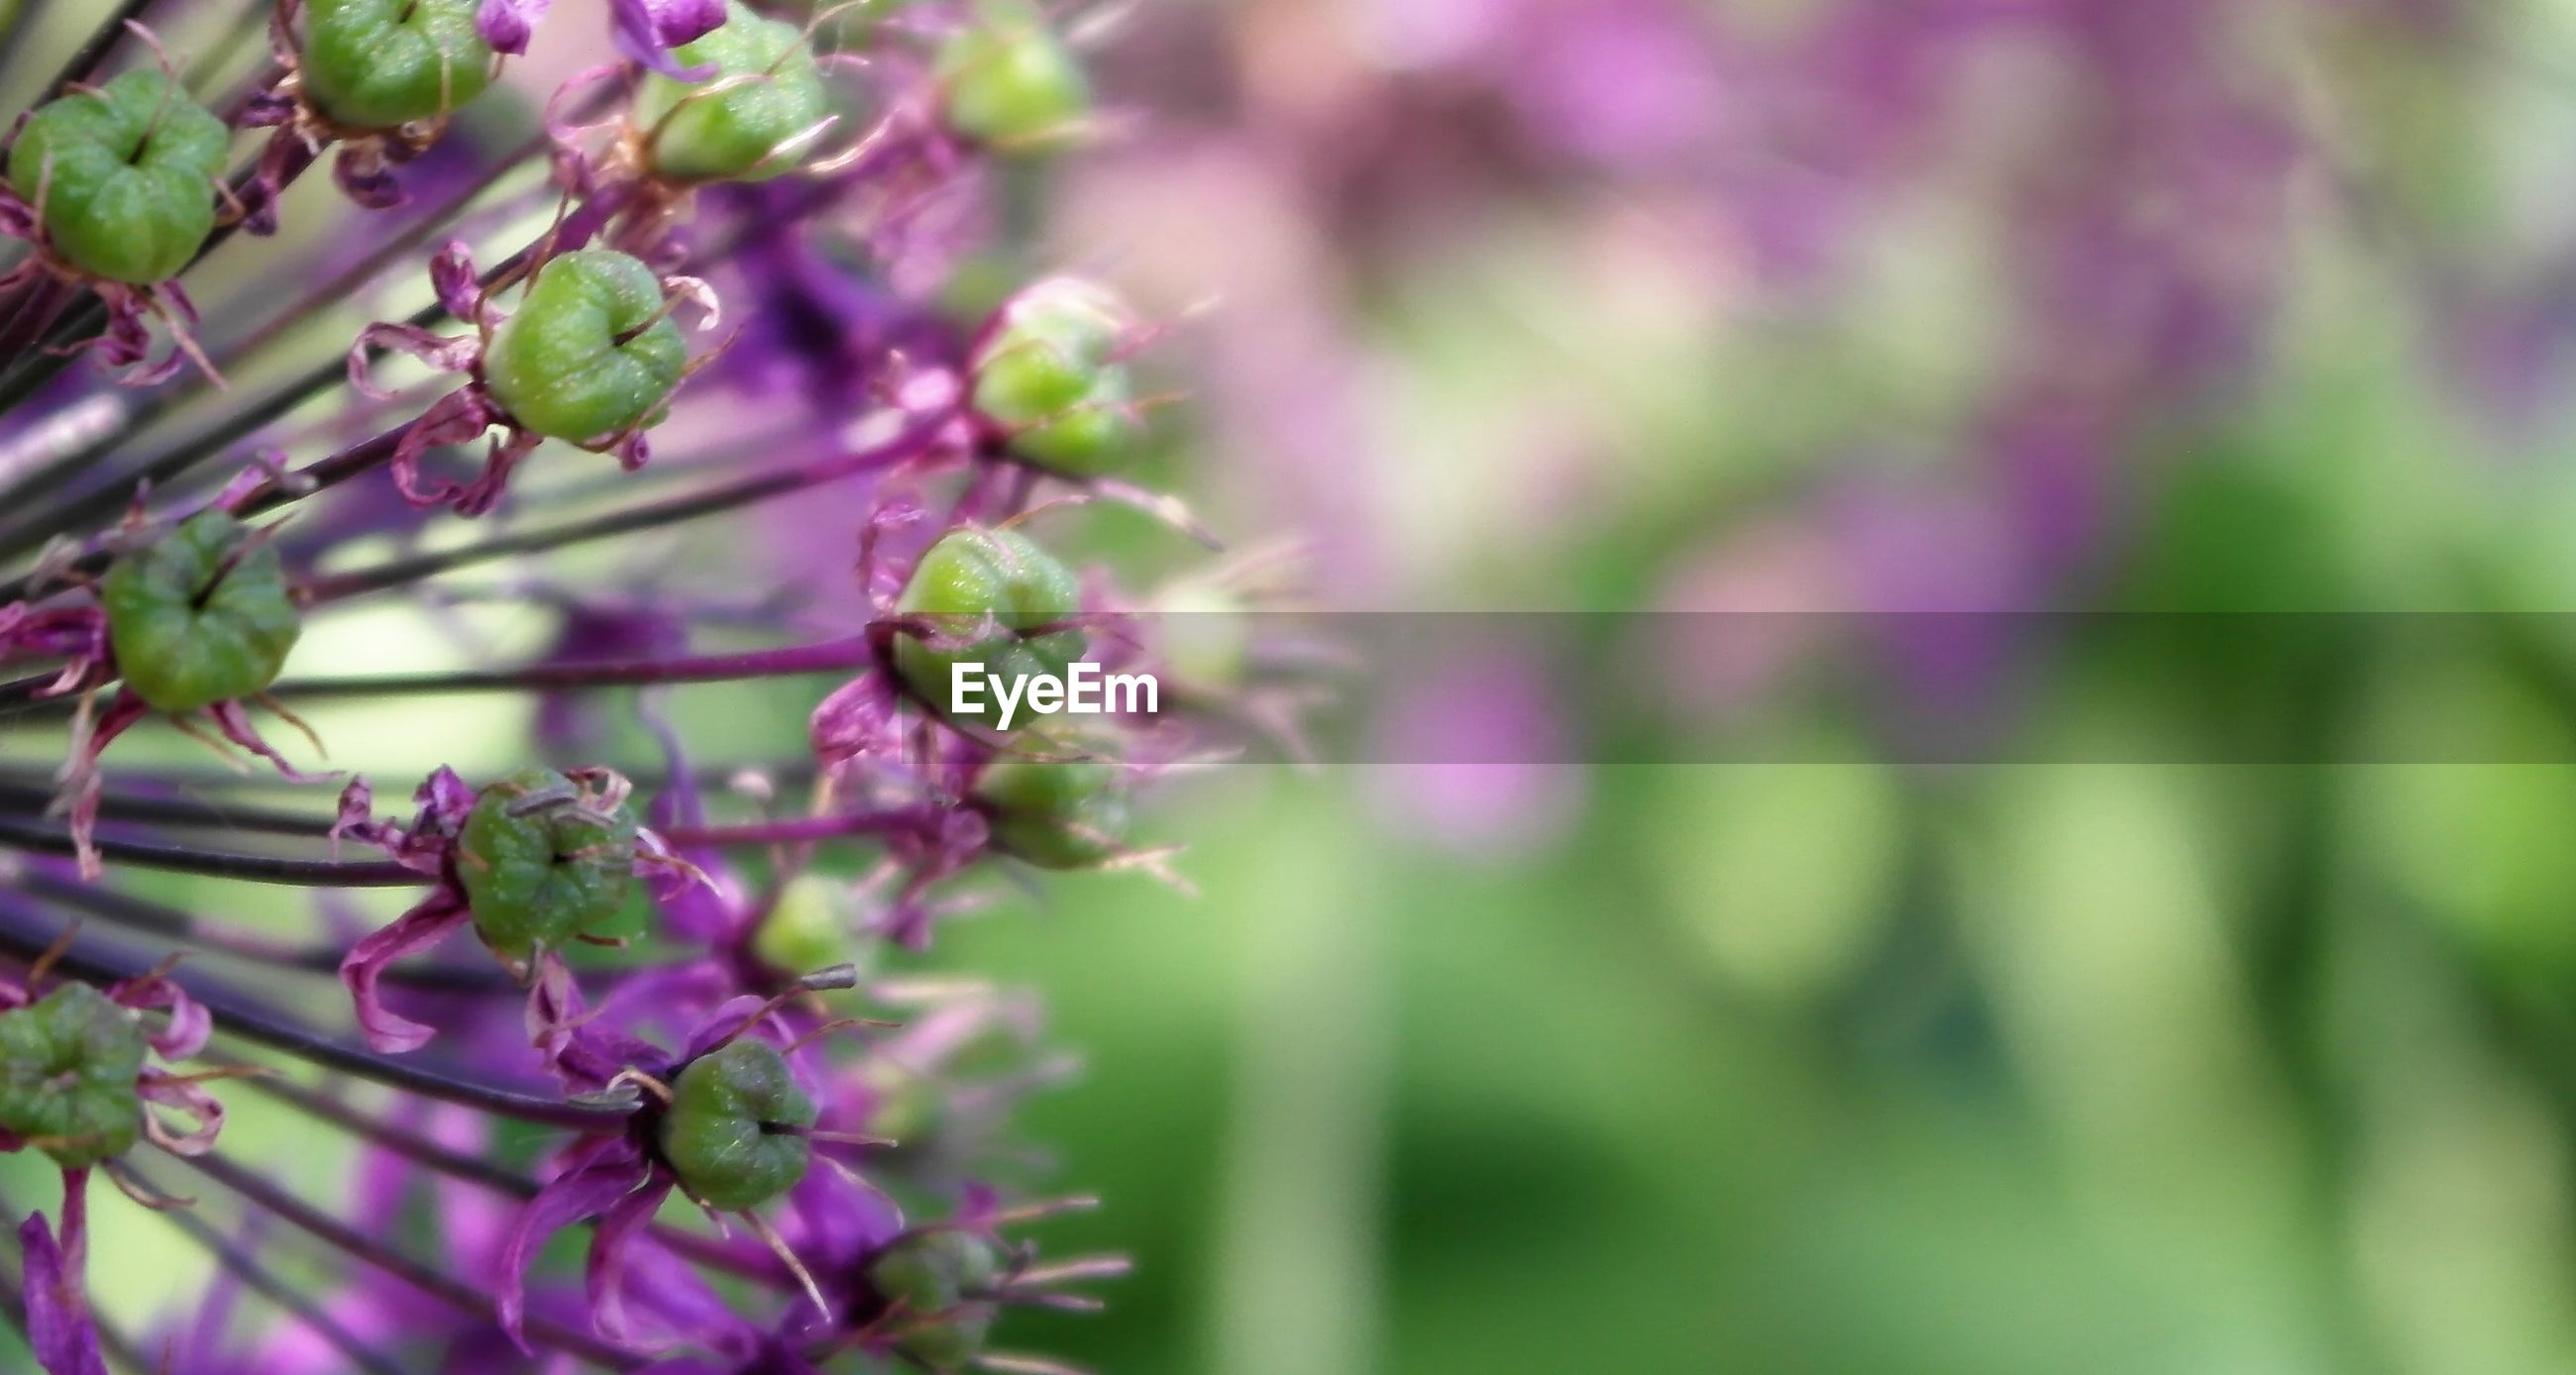 CLOSE-UP OF PURPLE FLOWER BLOOMING ON PLANT